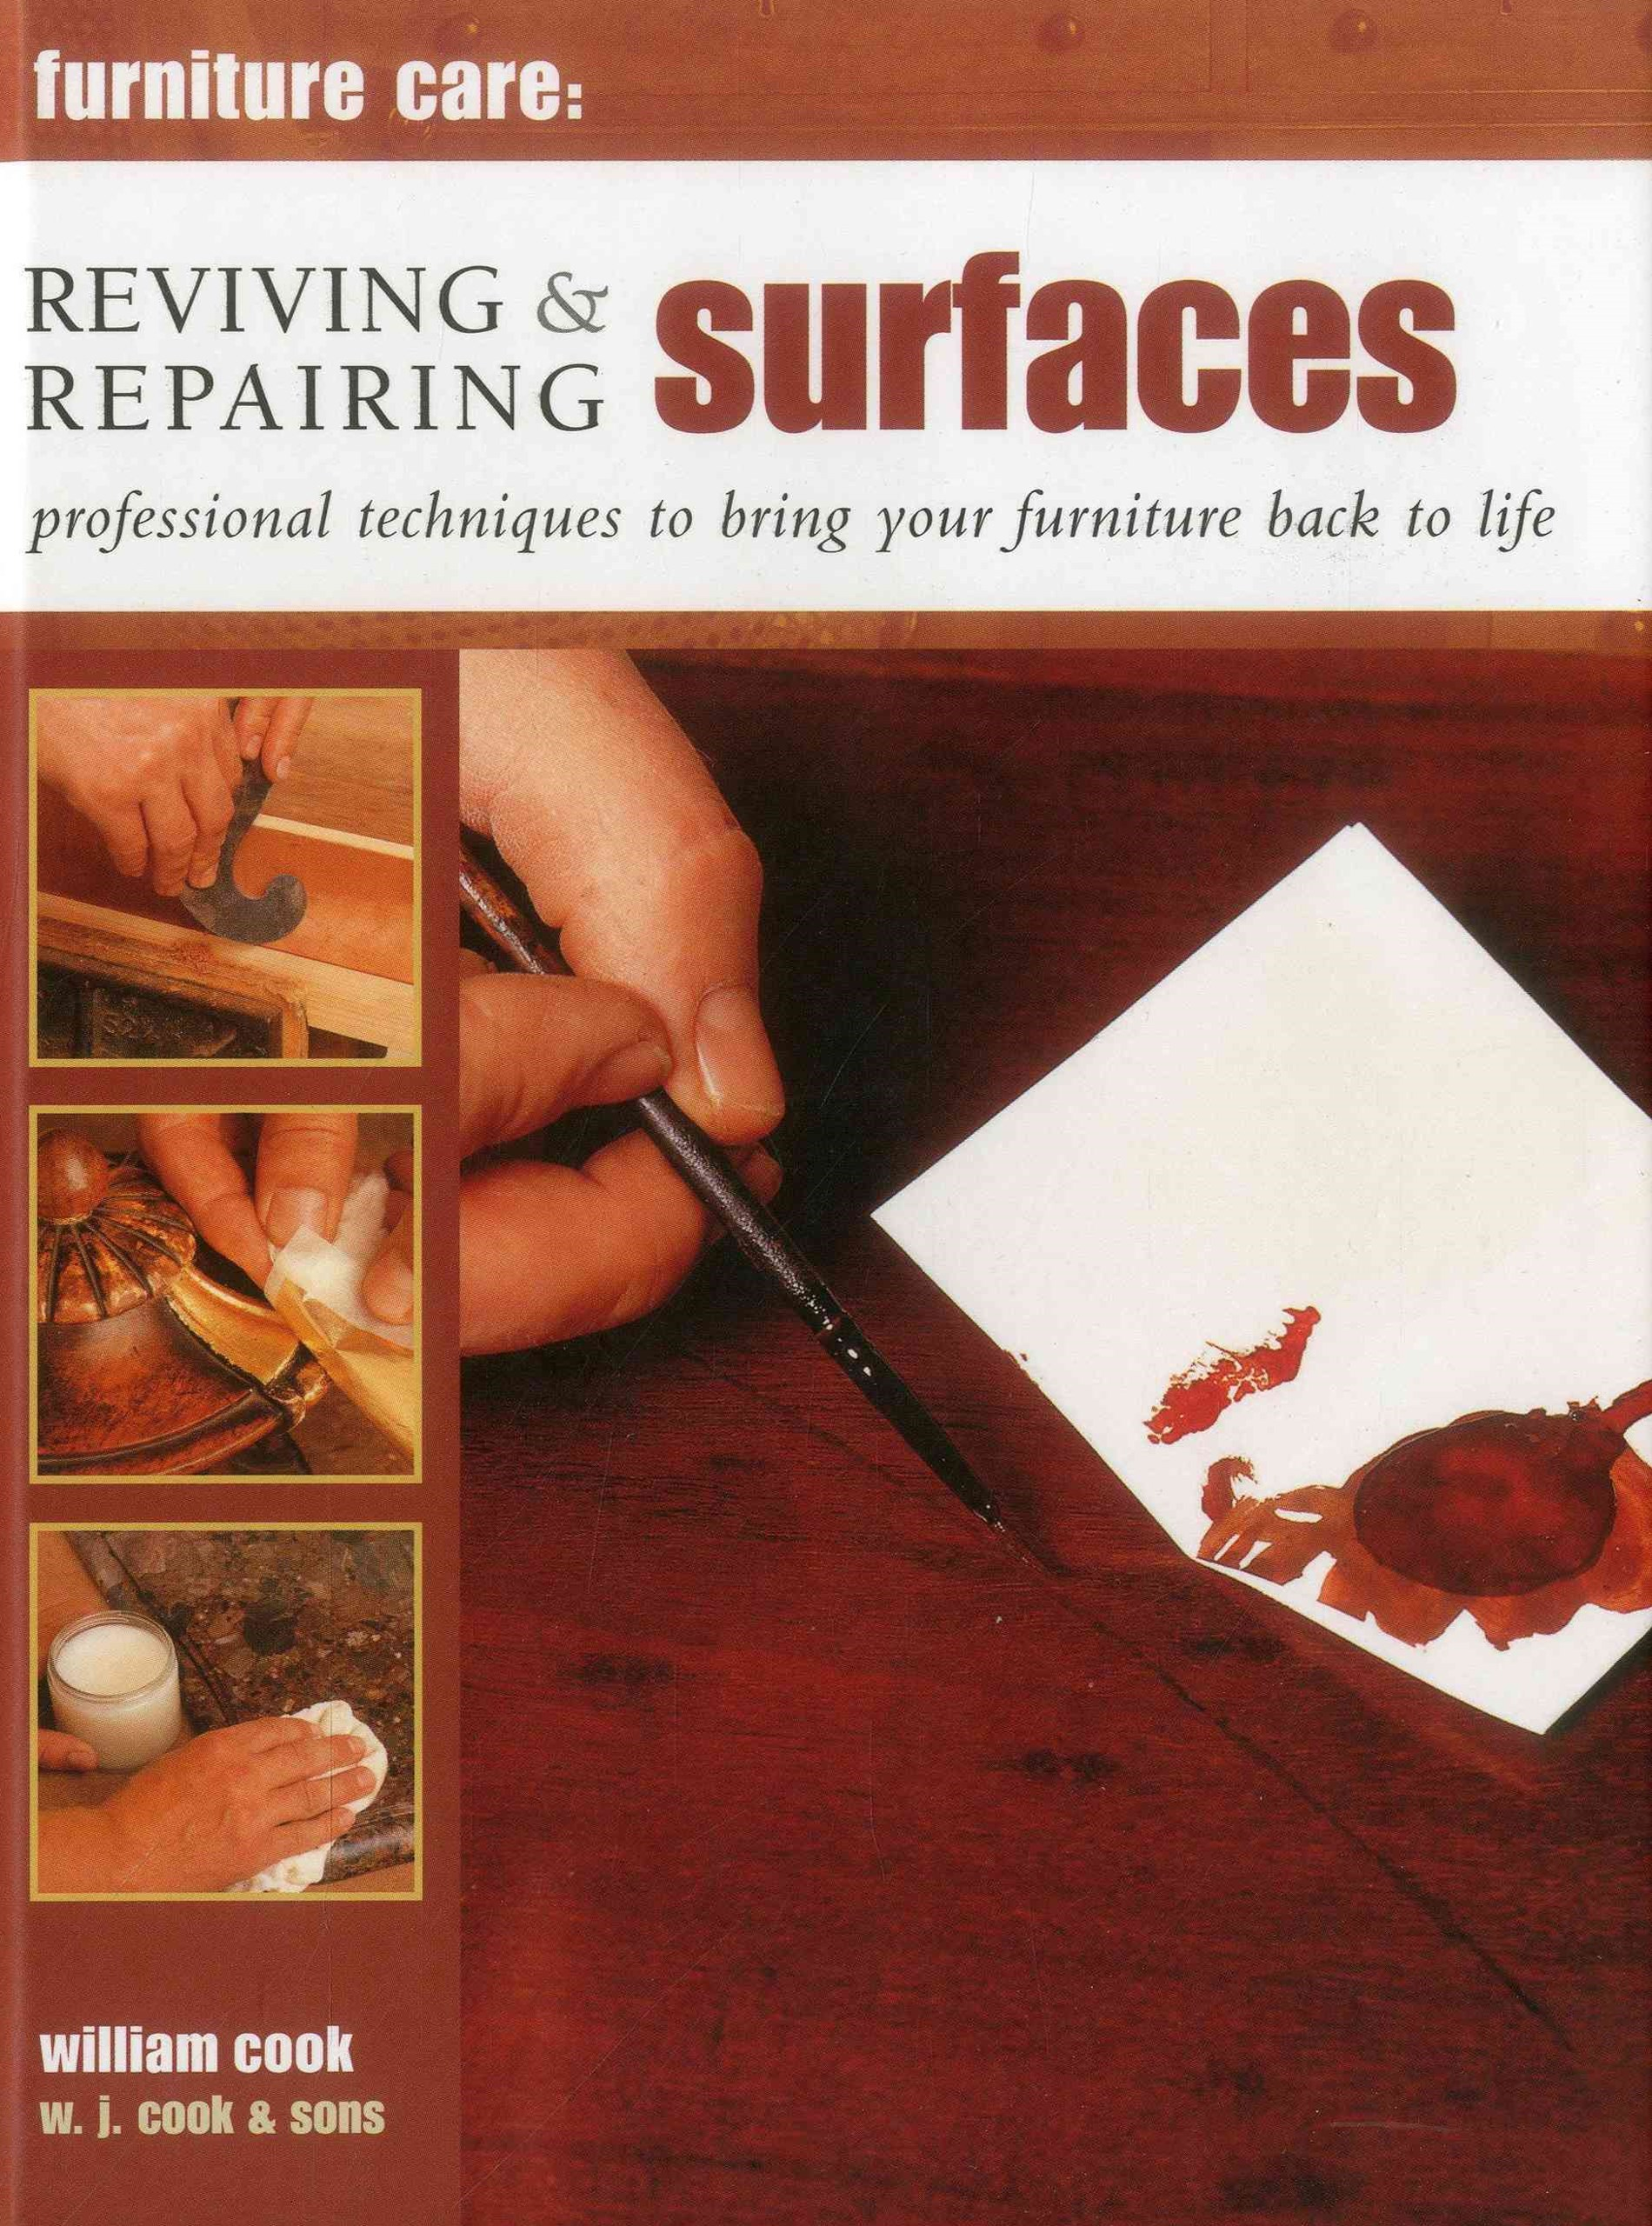 Furniture Care: Reviving and Repairing Surfaces